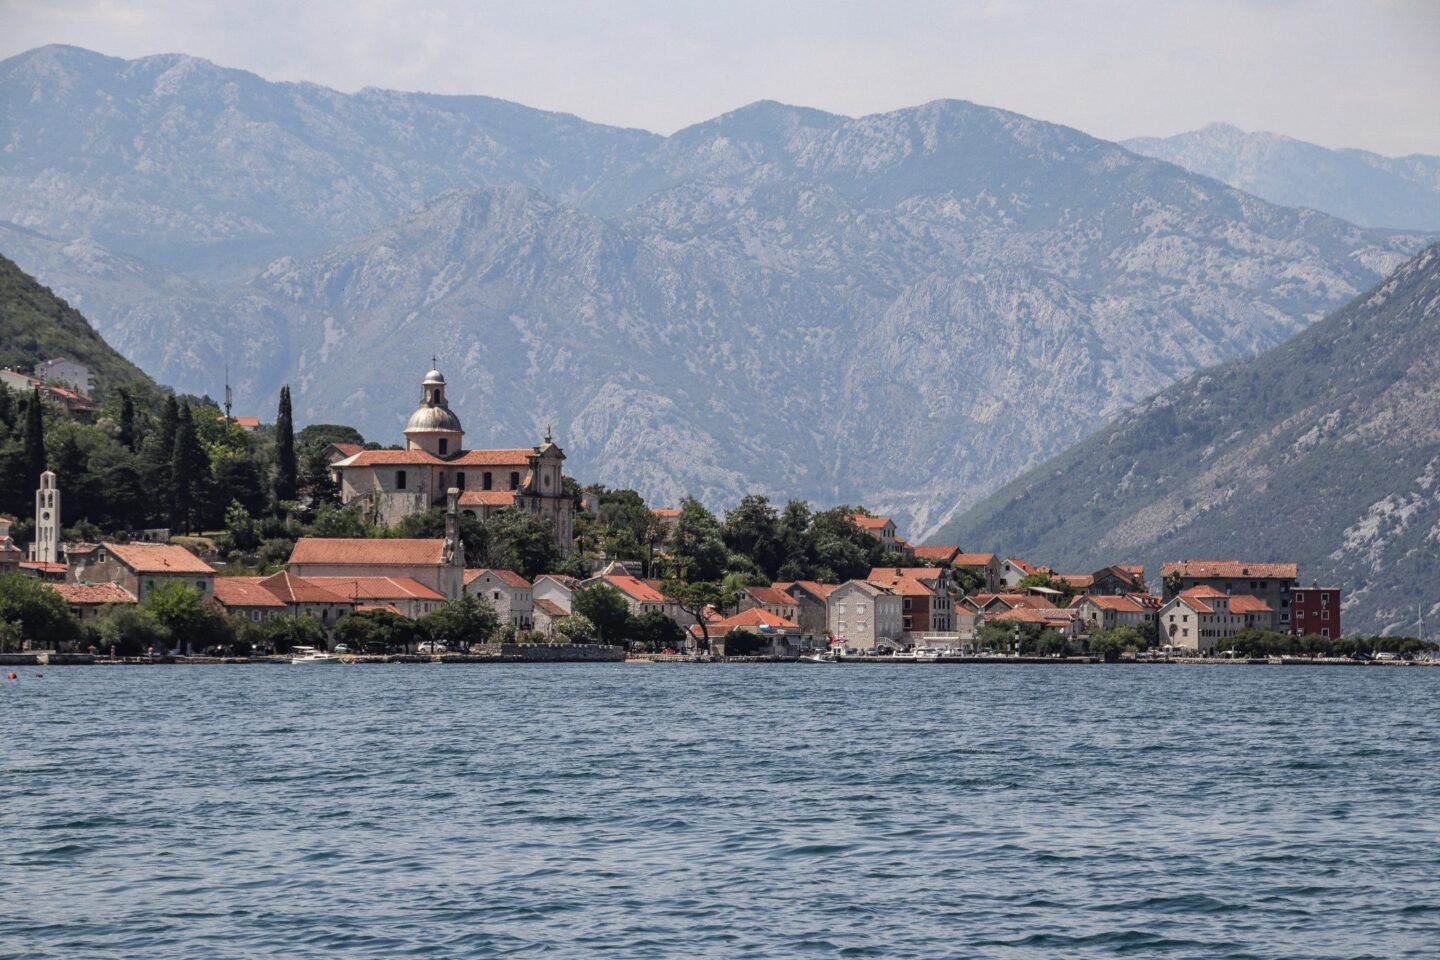 The Balkans: A 2 Week, 3 Country, Road Trip Itinerary